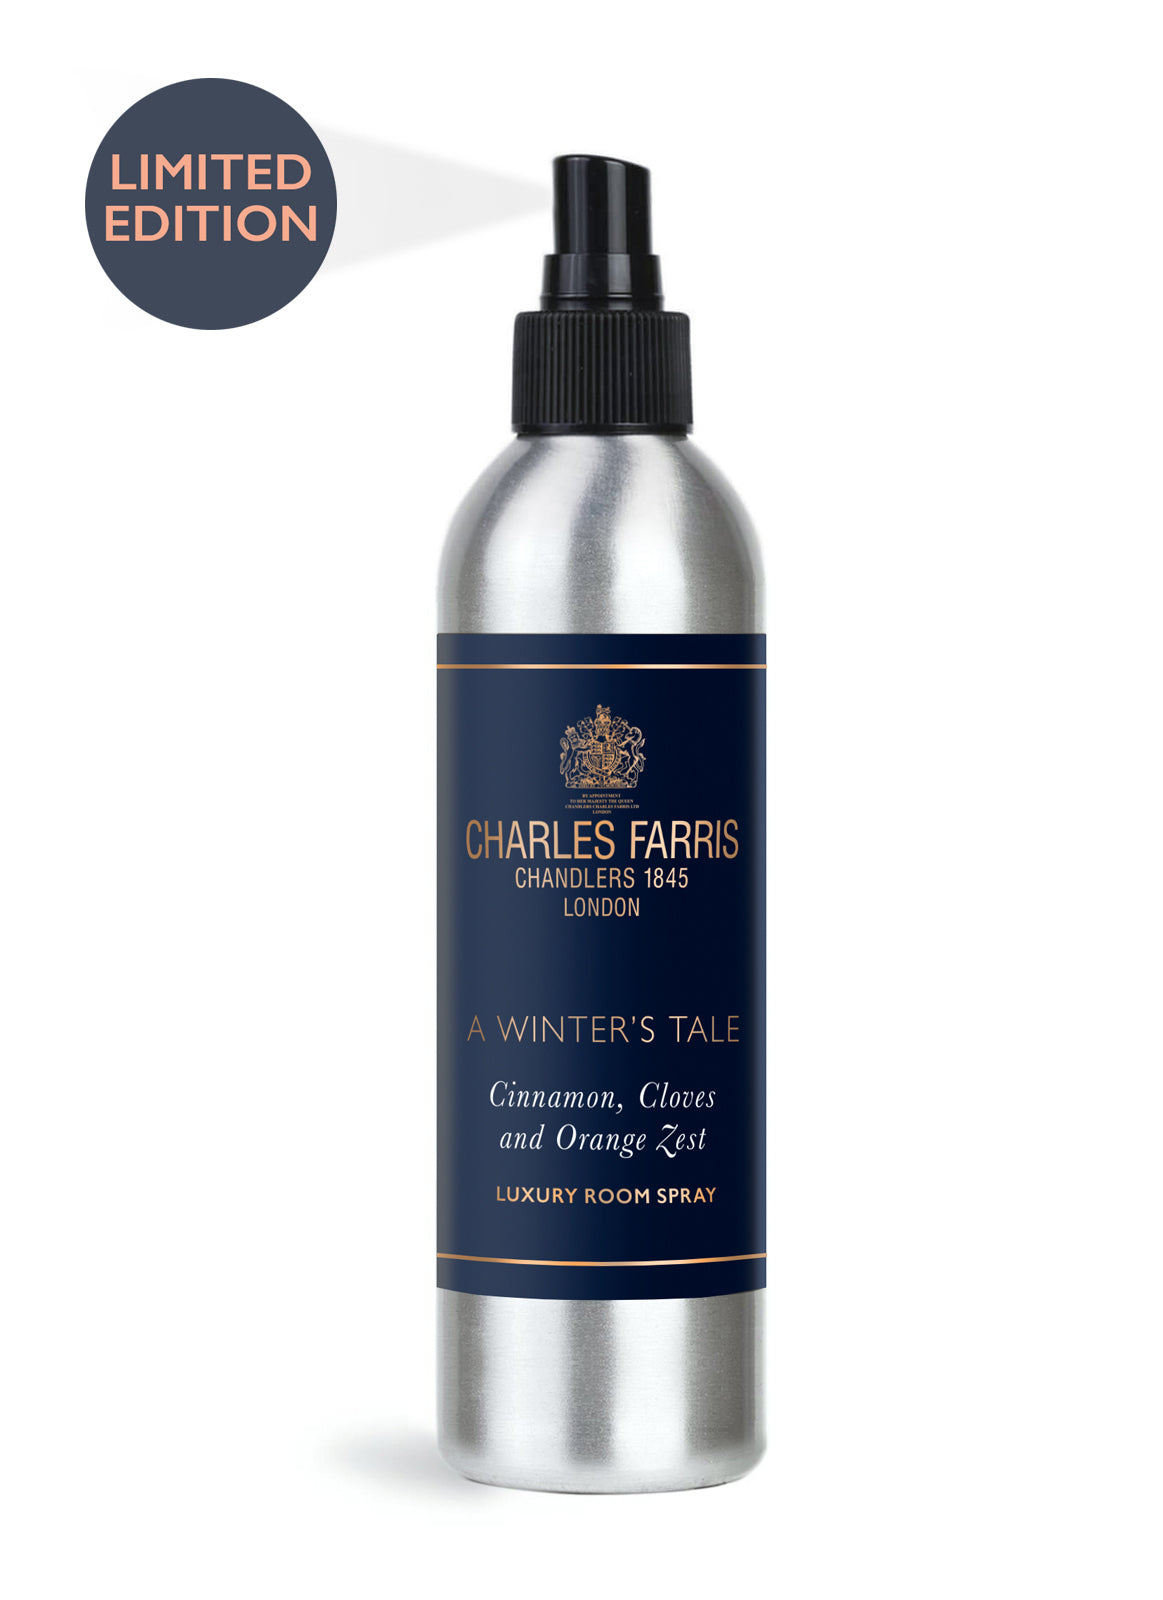 A Winter's Tale Room Spray | Orange Zest, Cinnamon & Cloves